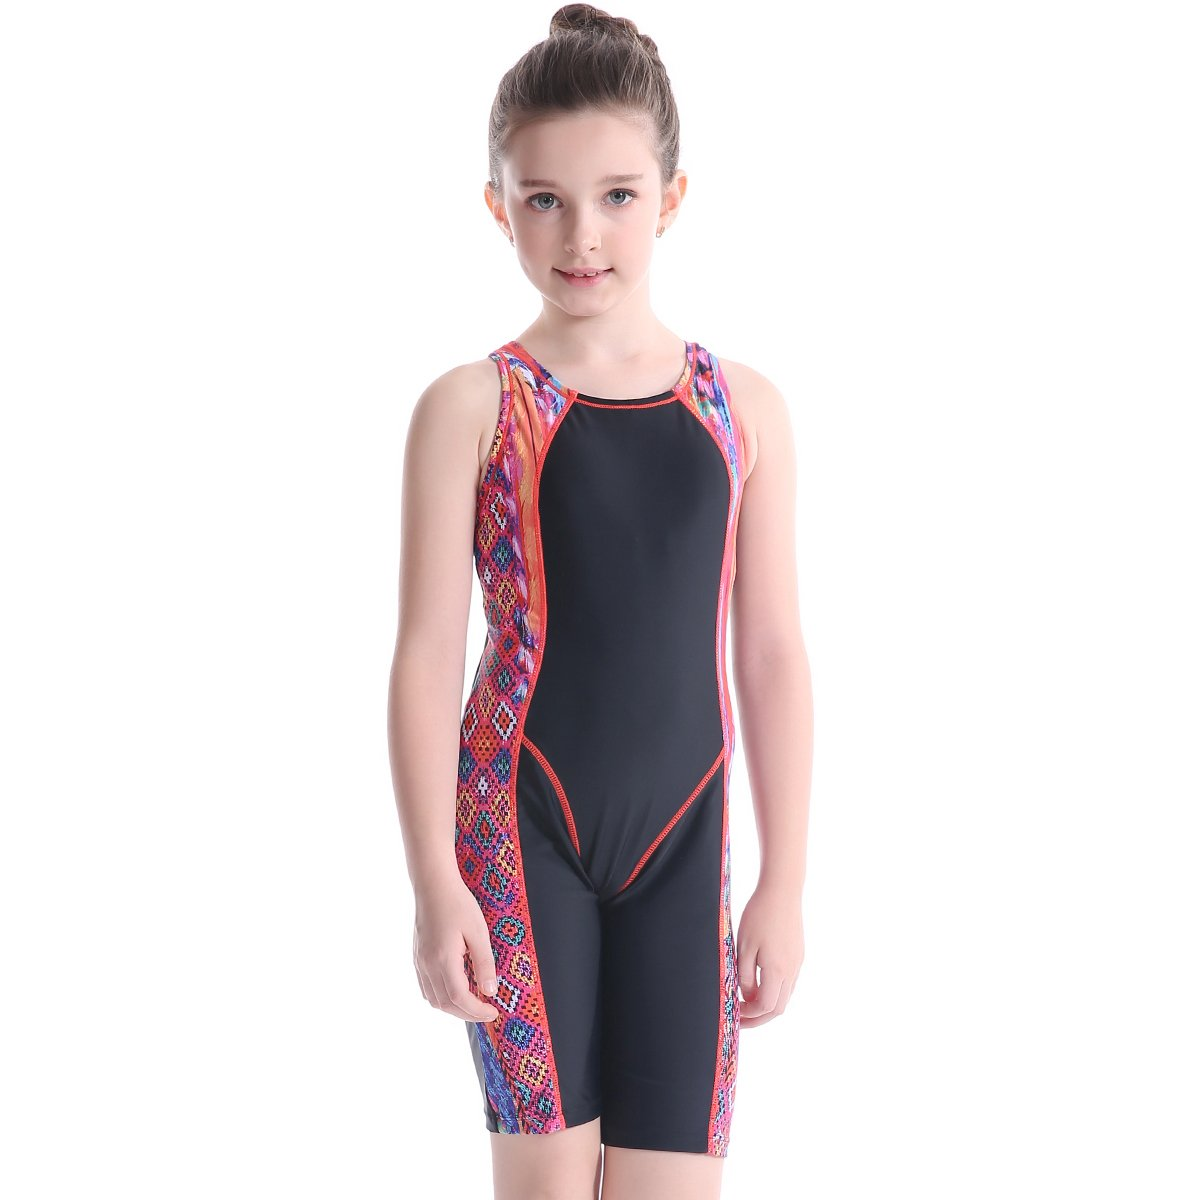 Peacoco Big Girls' Solid Splice Athletic One-Piece Swimsuits Racerback Competive Legsuit for 8-12 Years